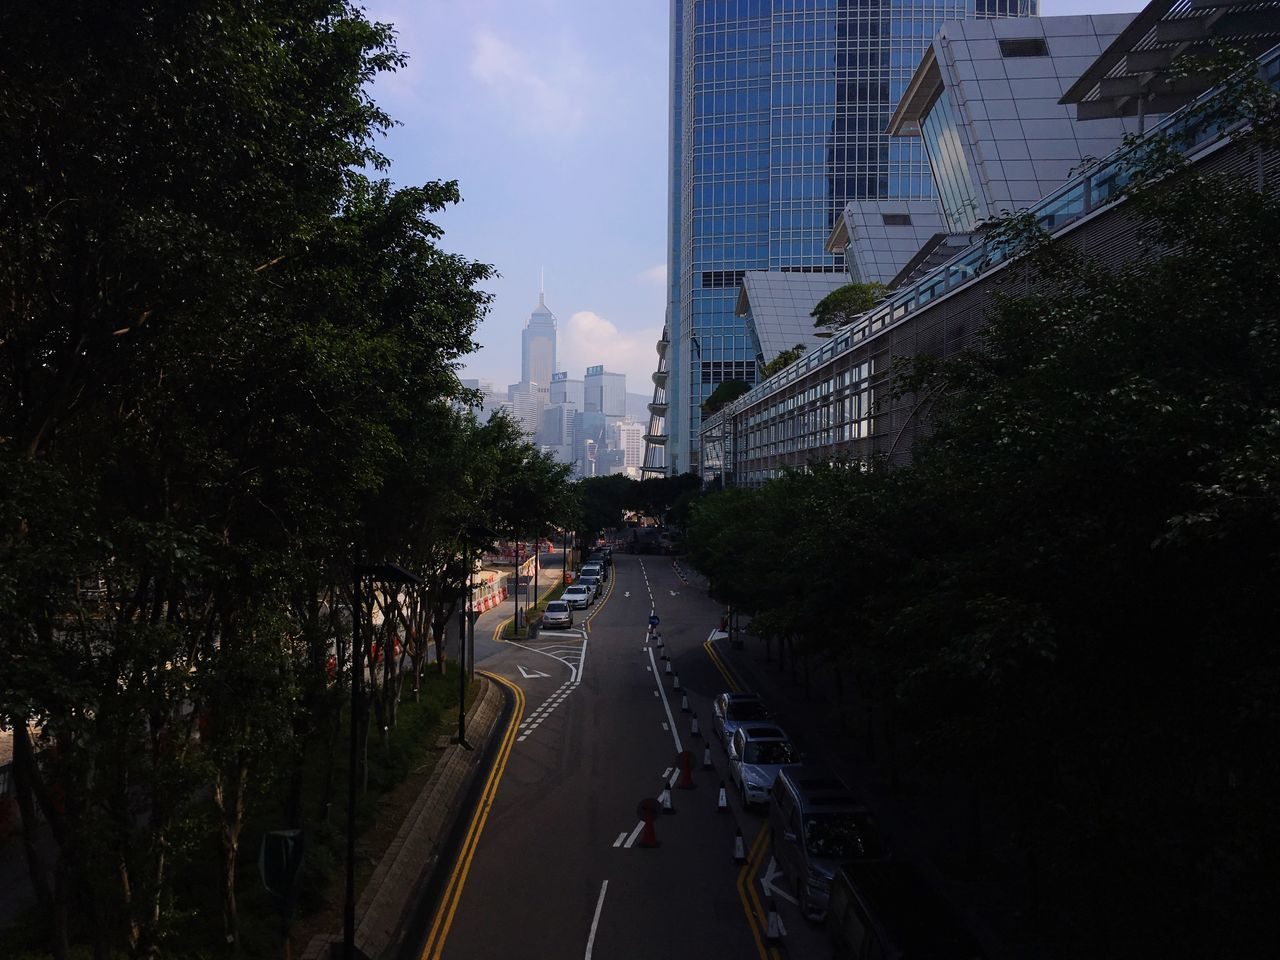 Architecture Building Exterior City Built Structure Tree Road Transportation Outdoors No People The Way Forward Growth Skyscraper Modern Sky Day Cityscape HongKong